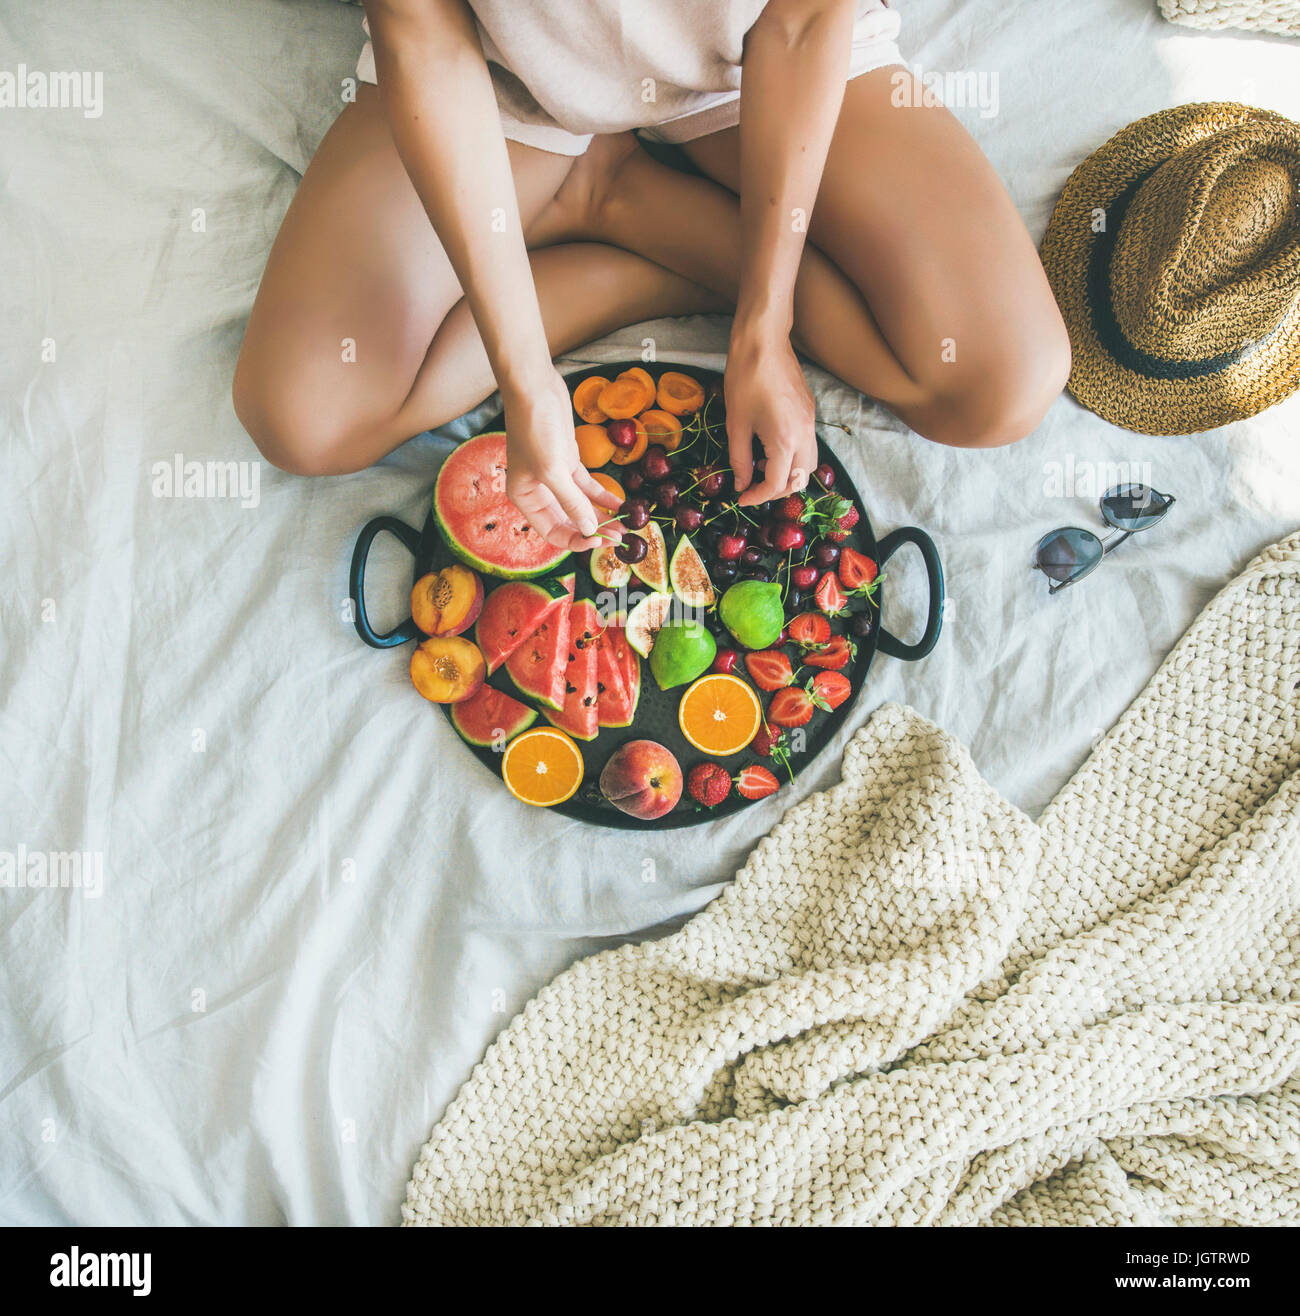 Summer healthy raw vegan clean eating breakfast in bed concept. Young girl wearing pastel colored home clothes taking - Stock Image